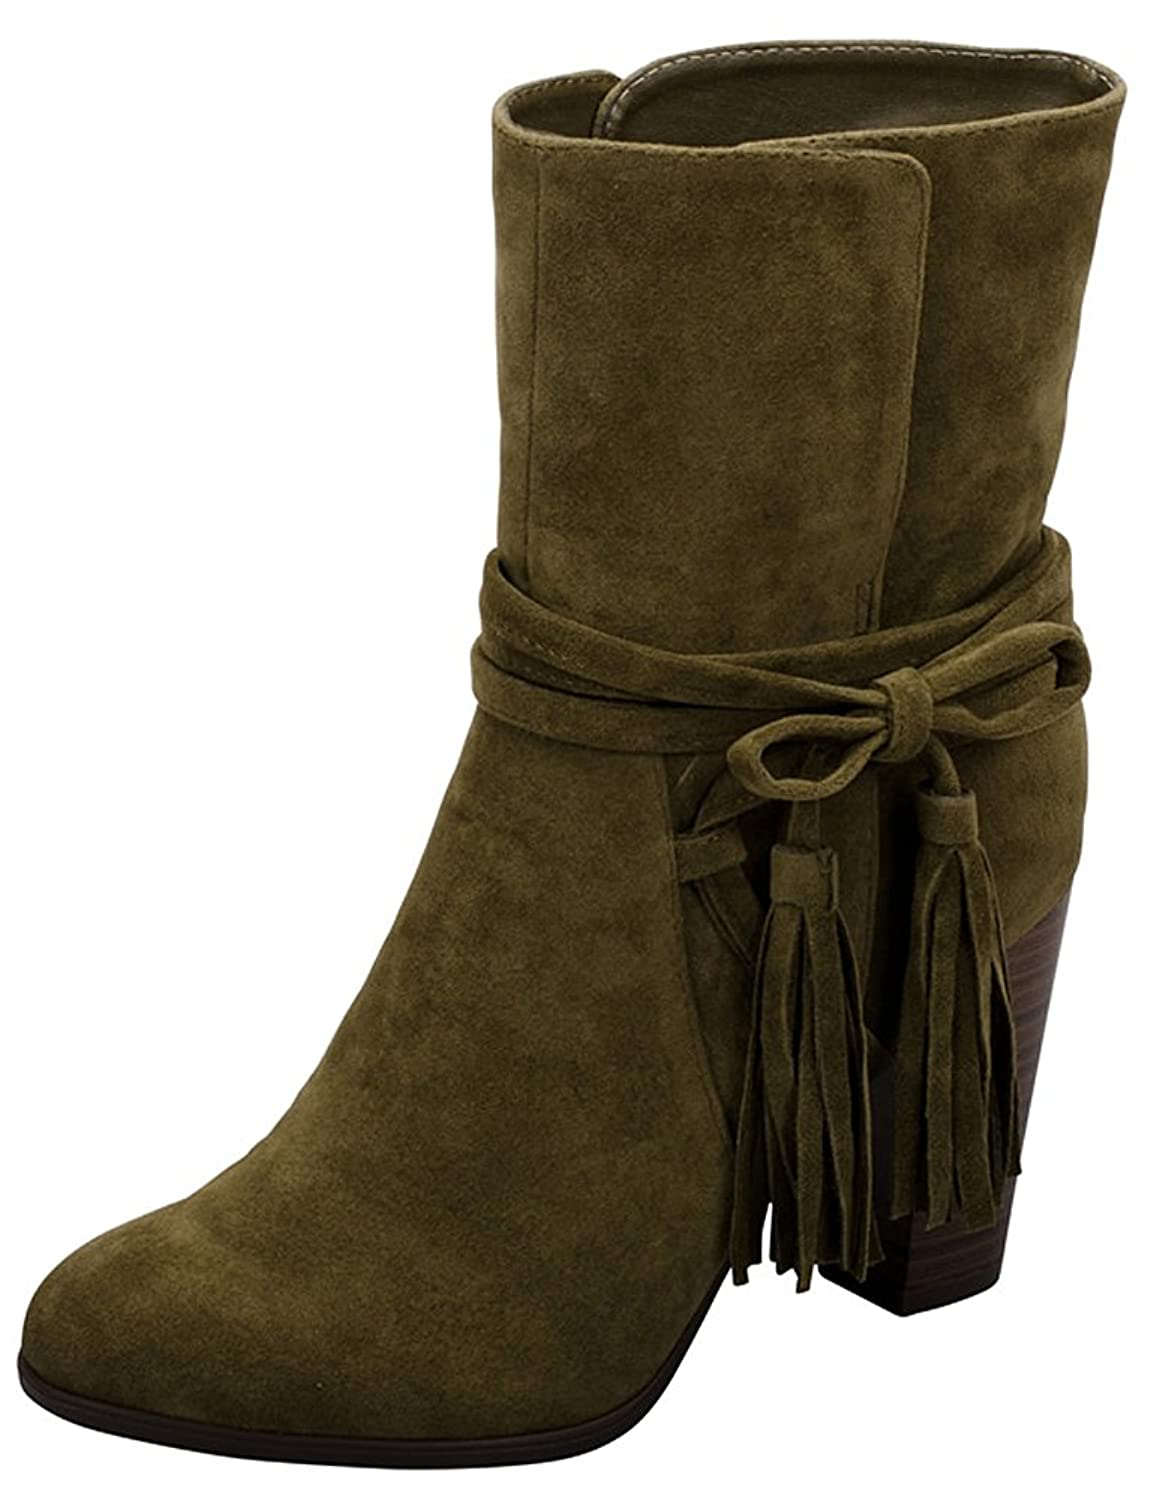 06e07d49d9c Breckelle s Women s Wrap Around Western Tassel Chunky Stacked Heel Ankle  Bootie